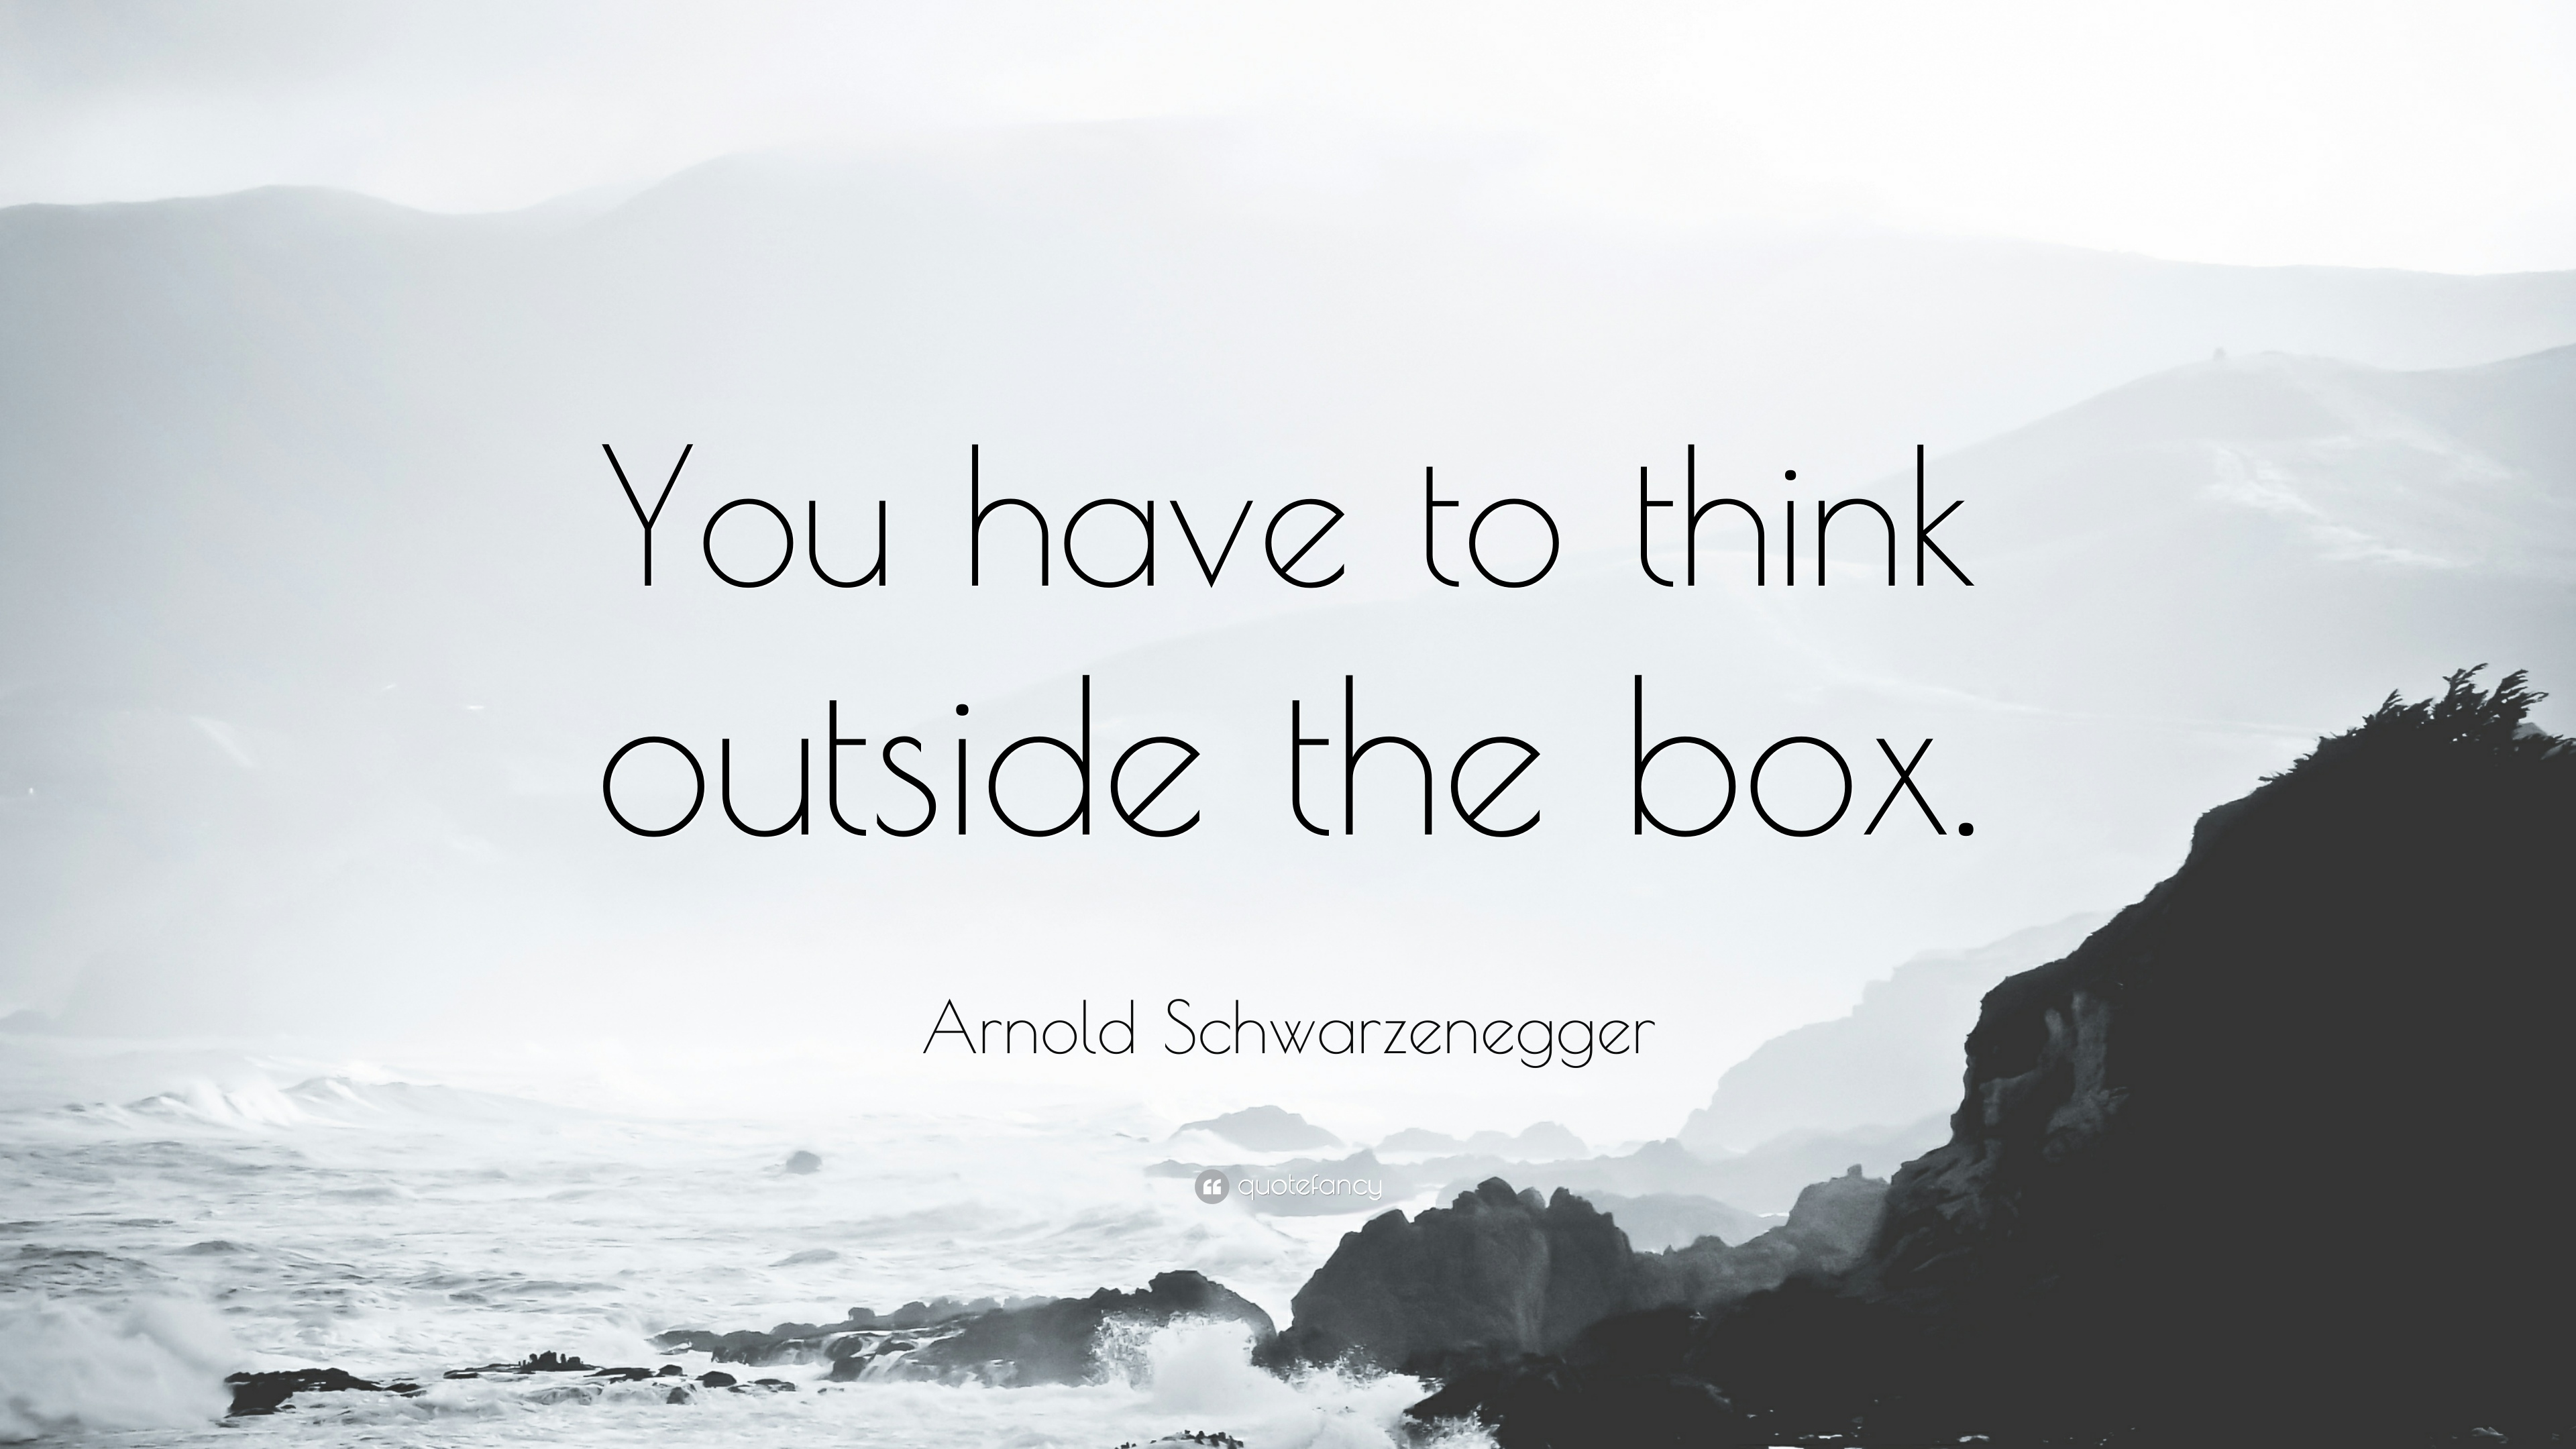 537190-Arnold-Schwarzenegger-Quote-You-have-to-think-outside-the-box